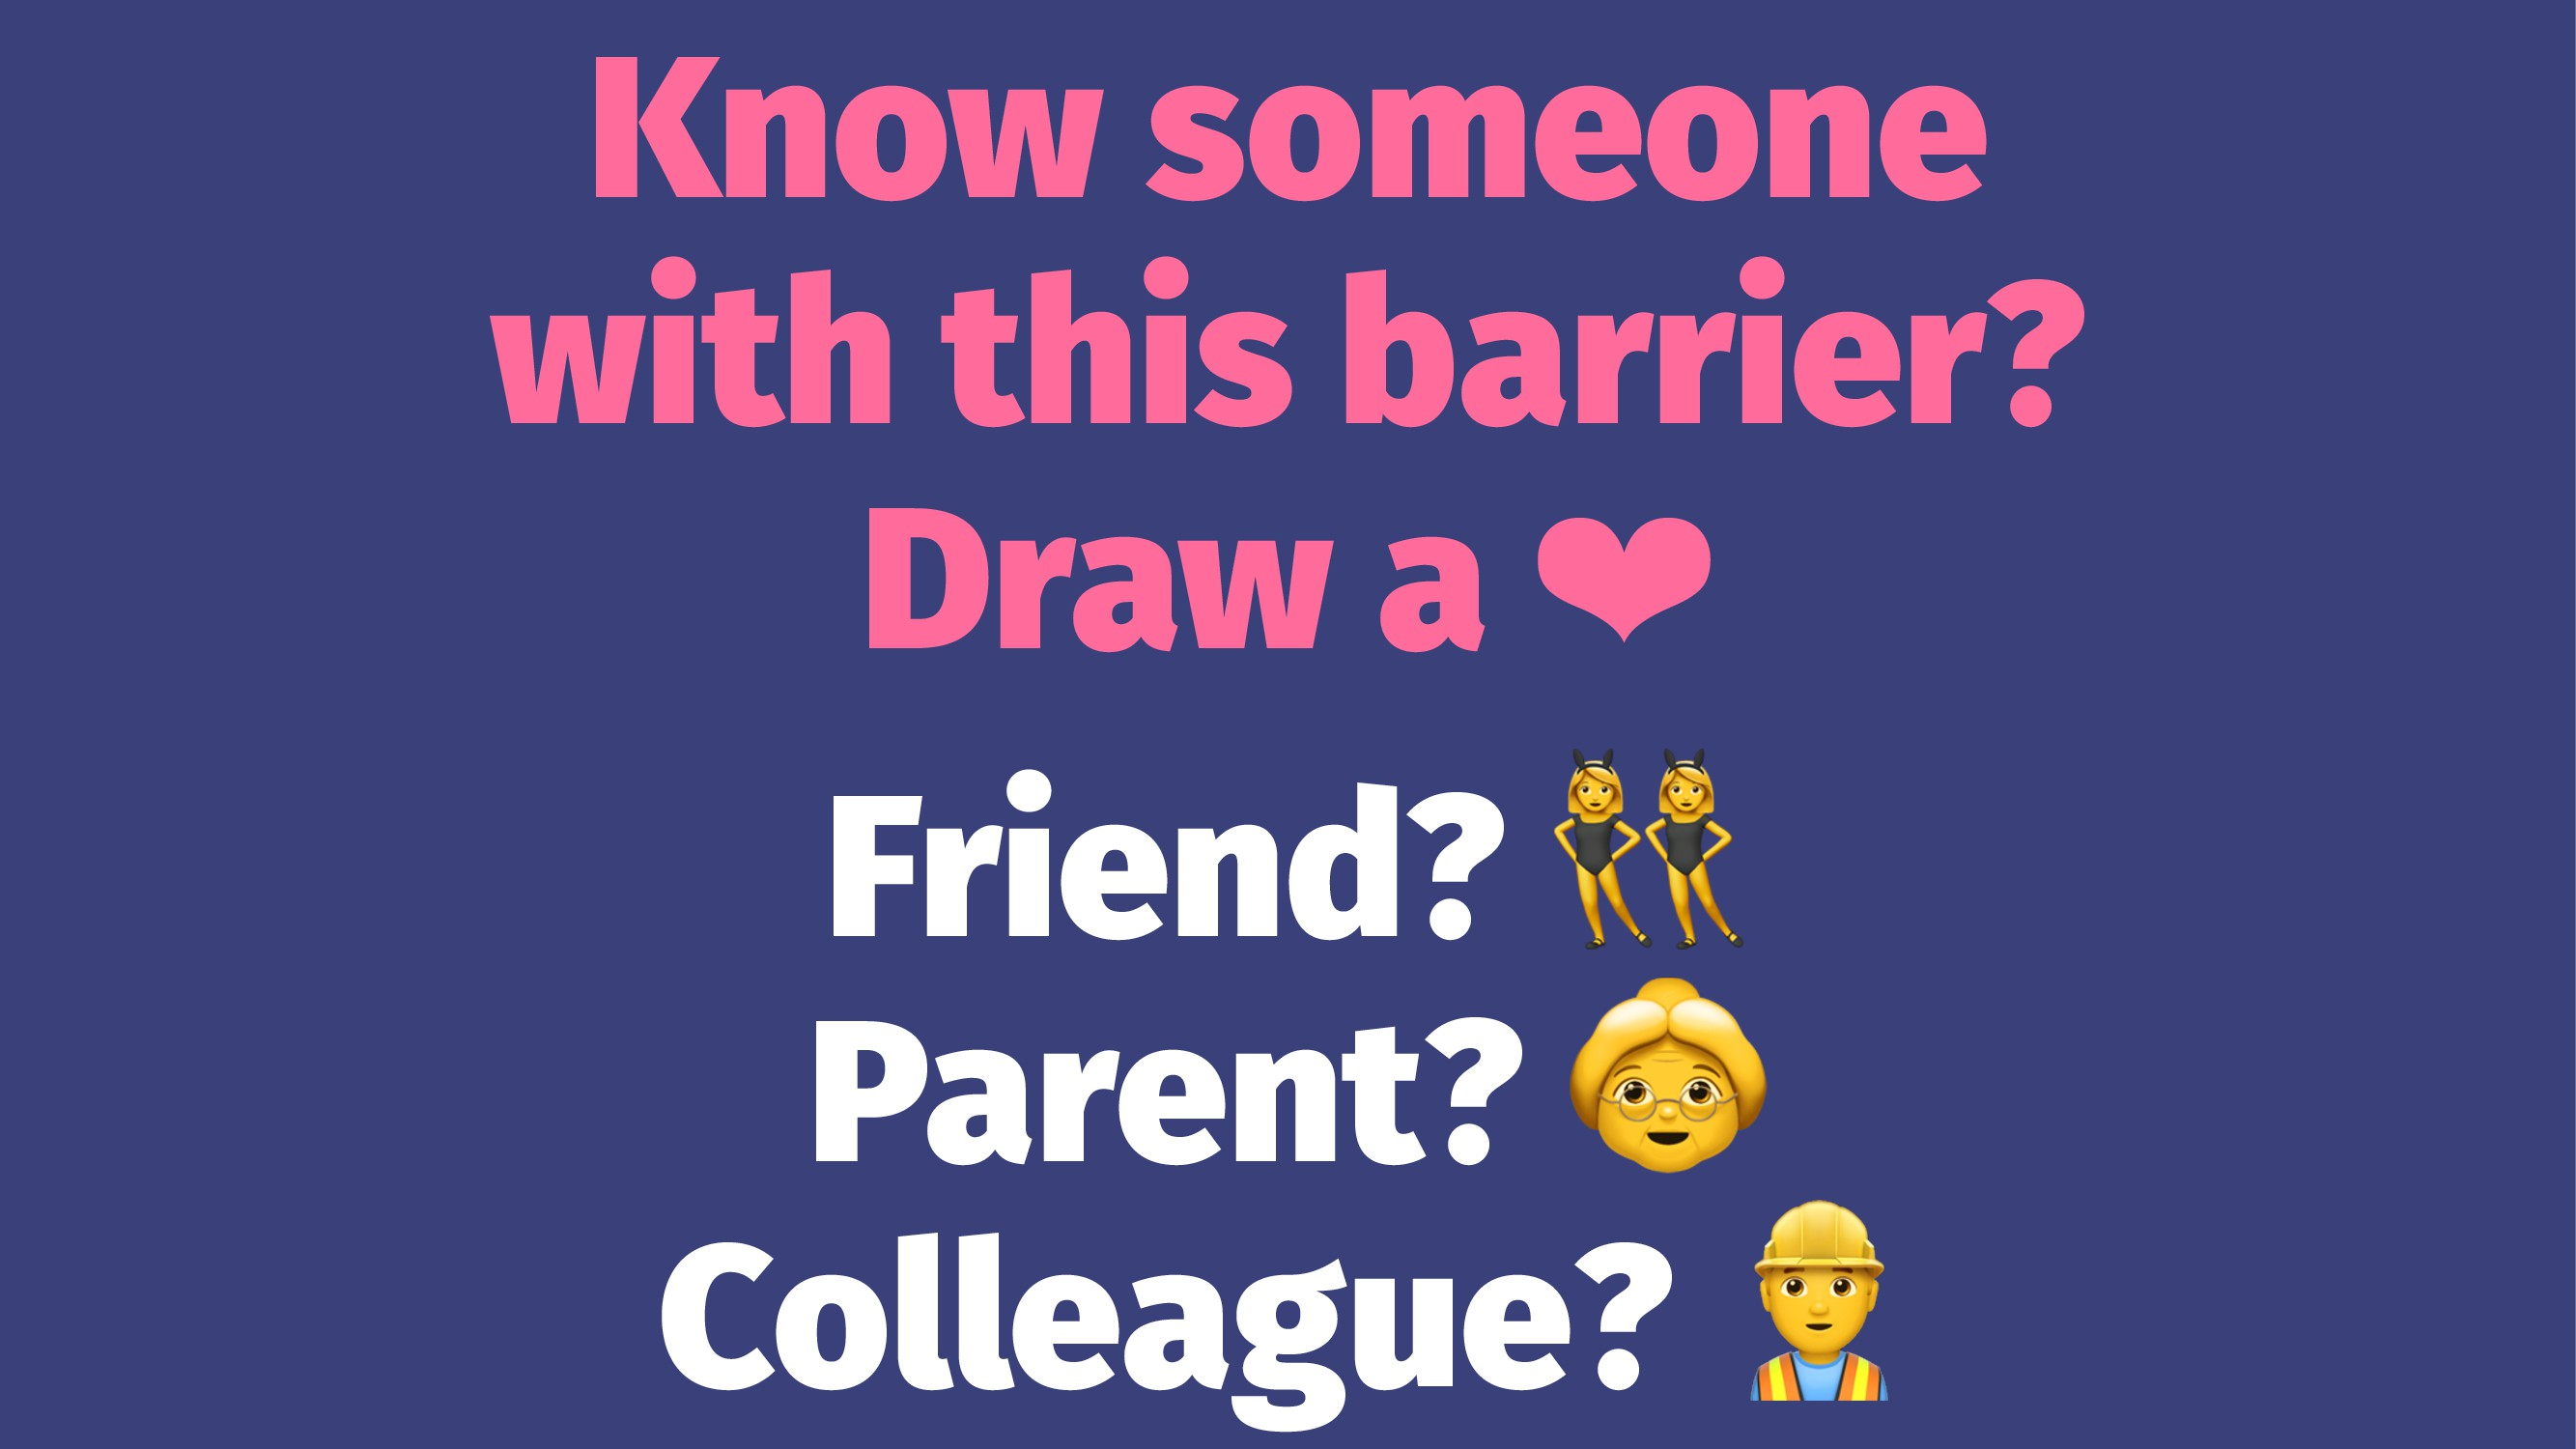 Know someone with this barrier? Draw a ❤ Friend...